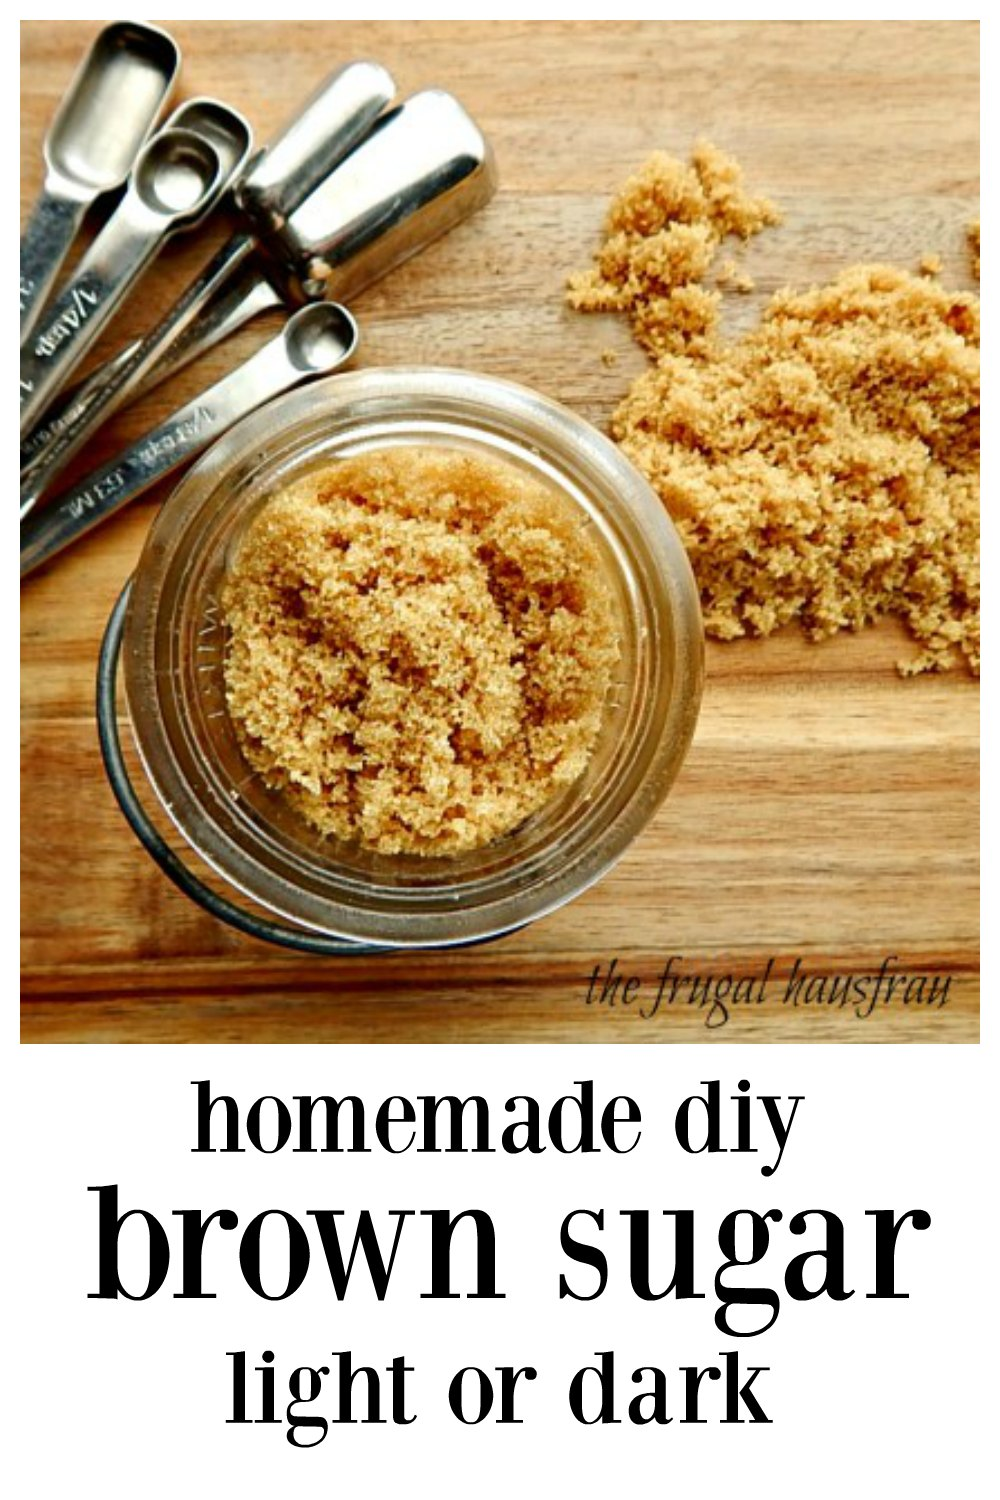 Mix up your own Homemade Light or Dark Brown Sugar in minutes. It's fast, easy and a great way to sub if you need brown sugar in a pinch. Cheaper, too! Make a little or a lot, 2 ingredients. 10 minutes #HomemdeBrownSugar #HomemadeLightDarkBrownSugar #DIYBrownSugar #HomemadeDarkBrownSugar #HomemadeLightBrownSugar